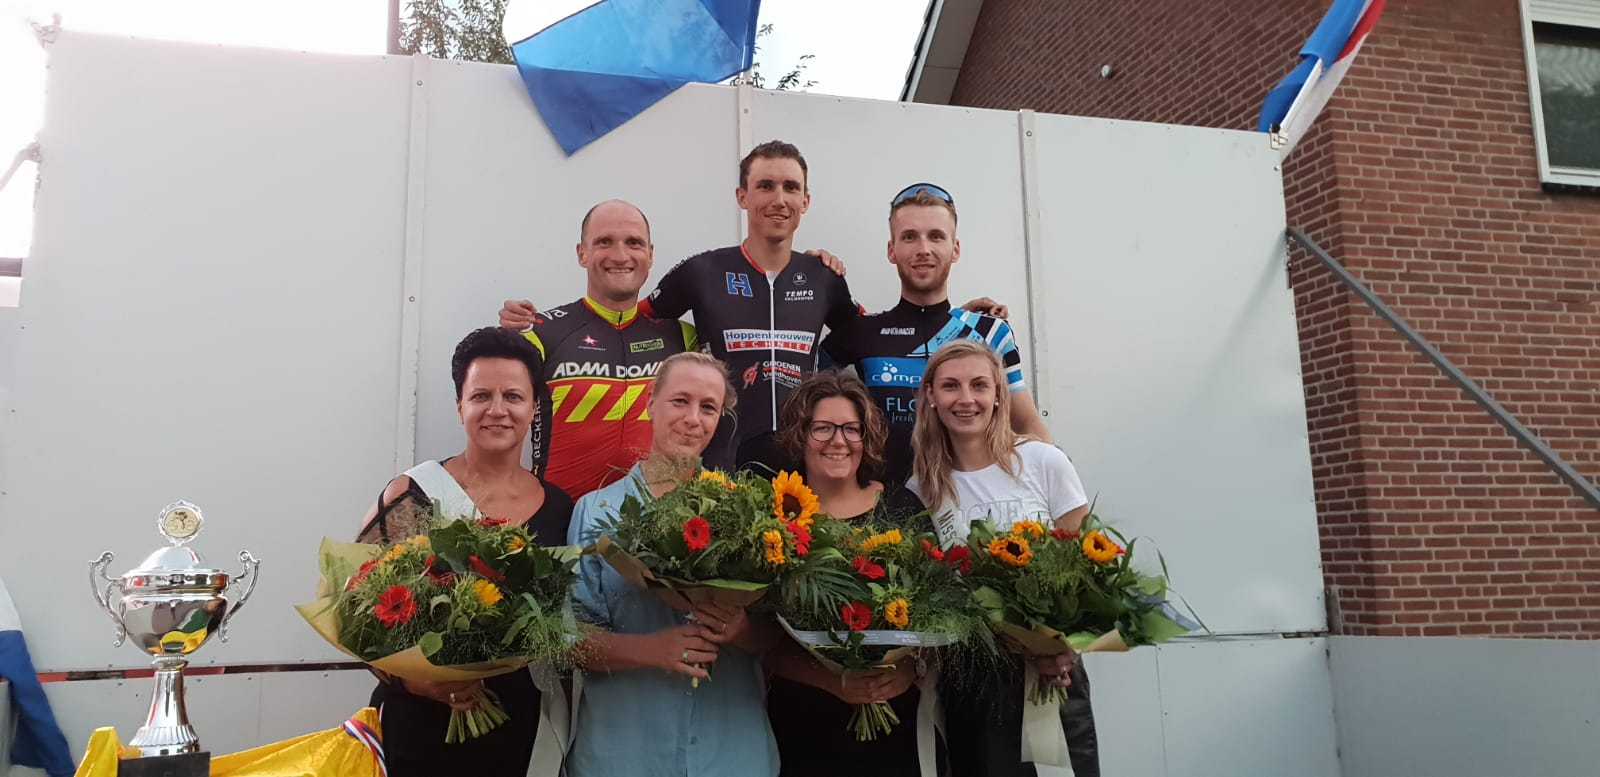 Podium amateurs